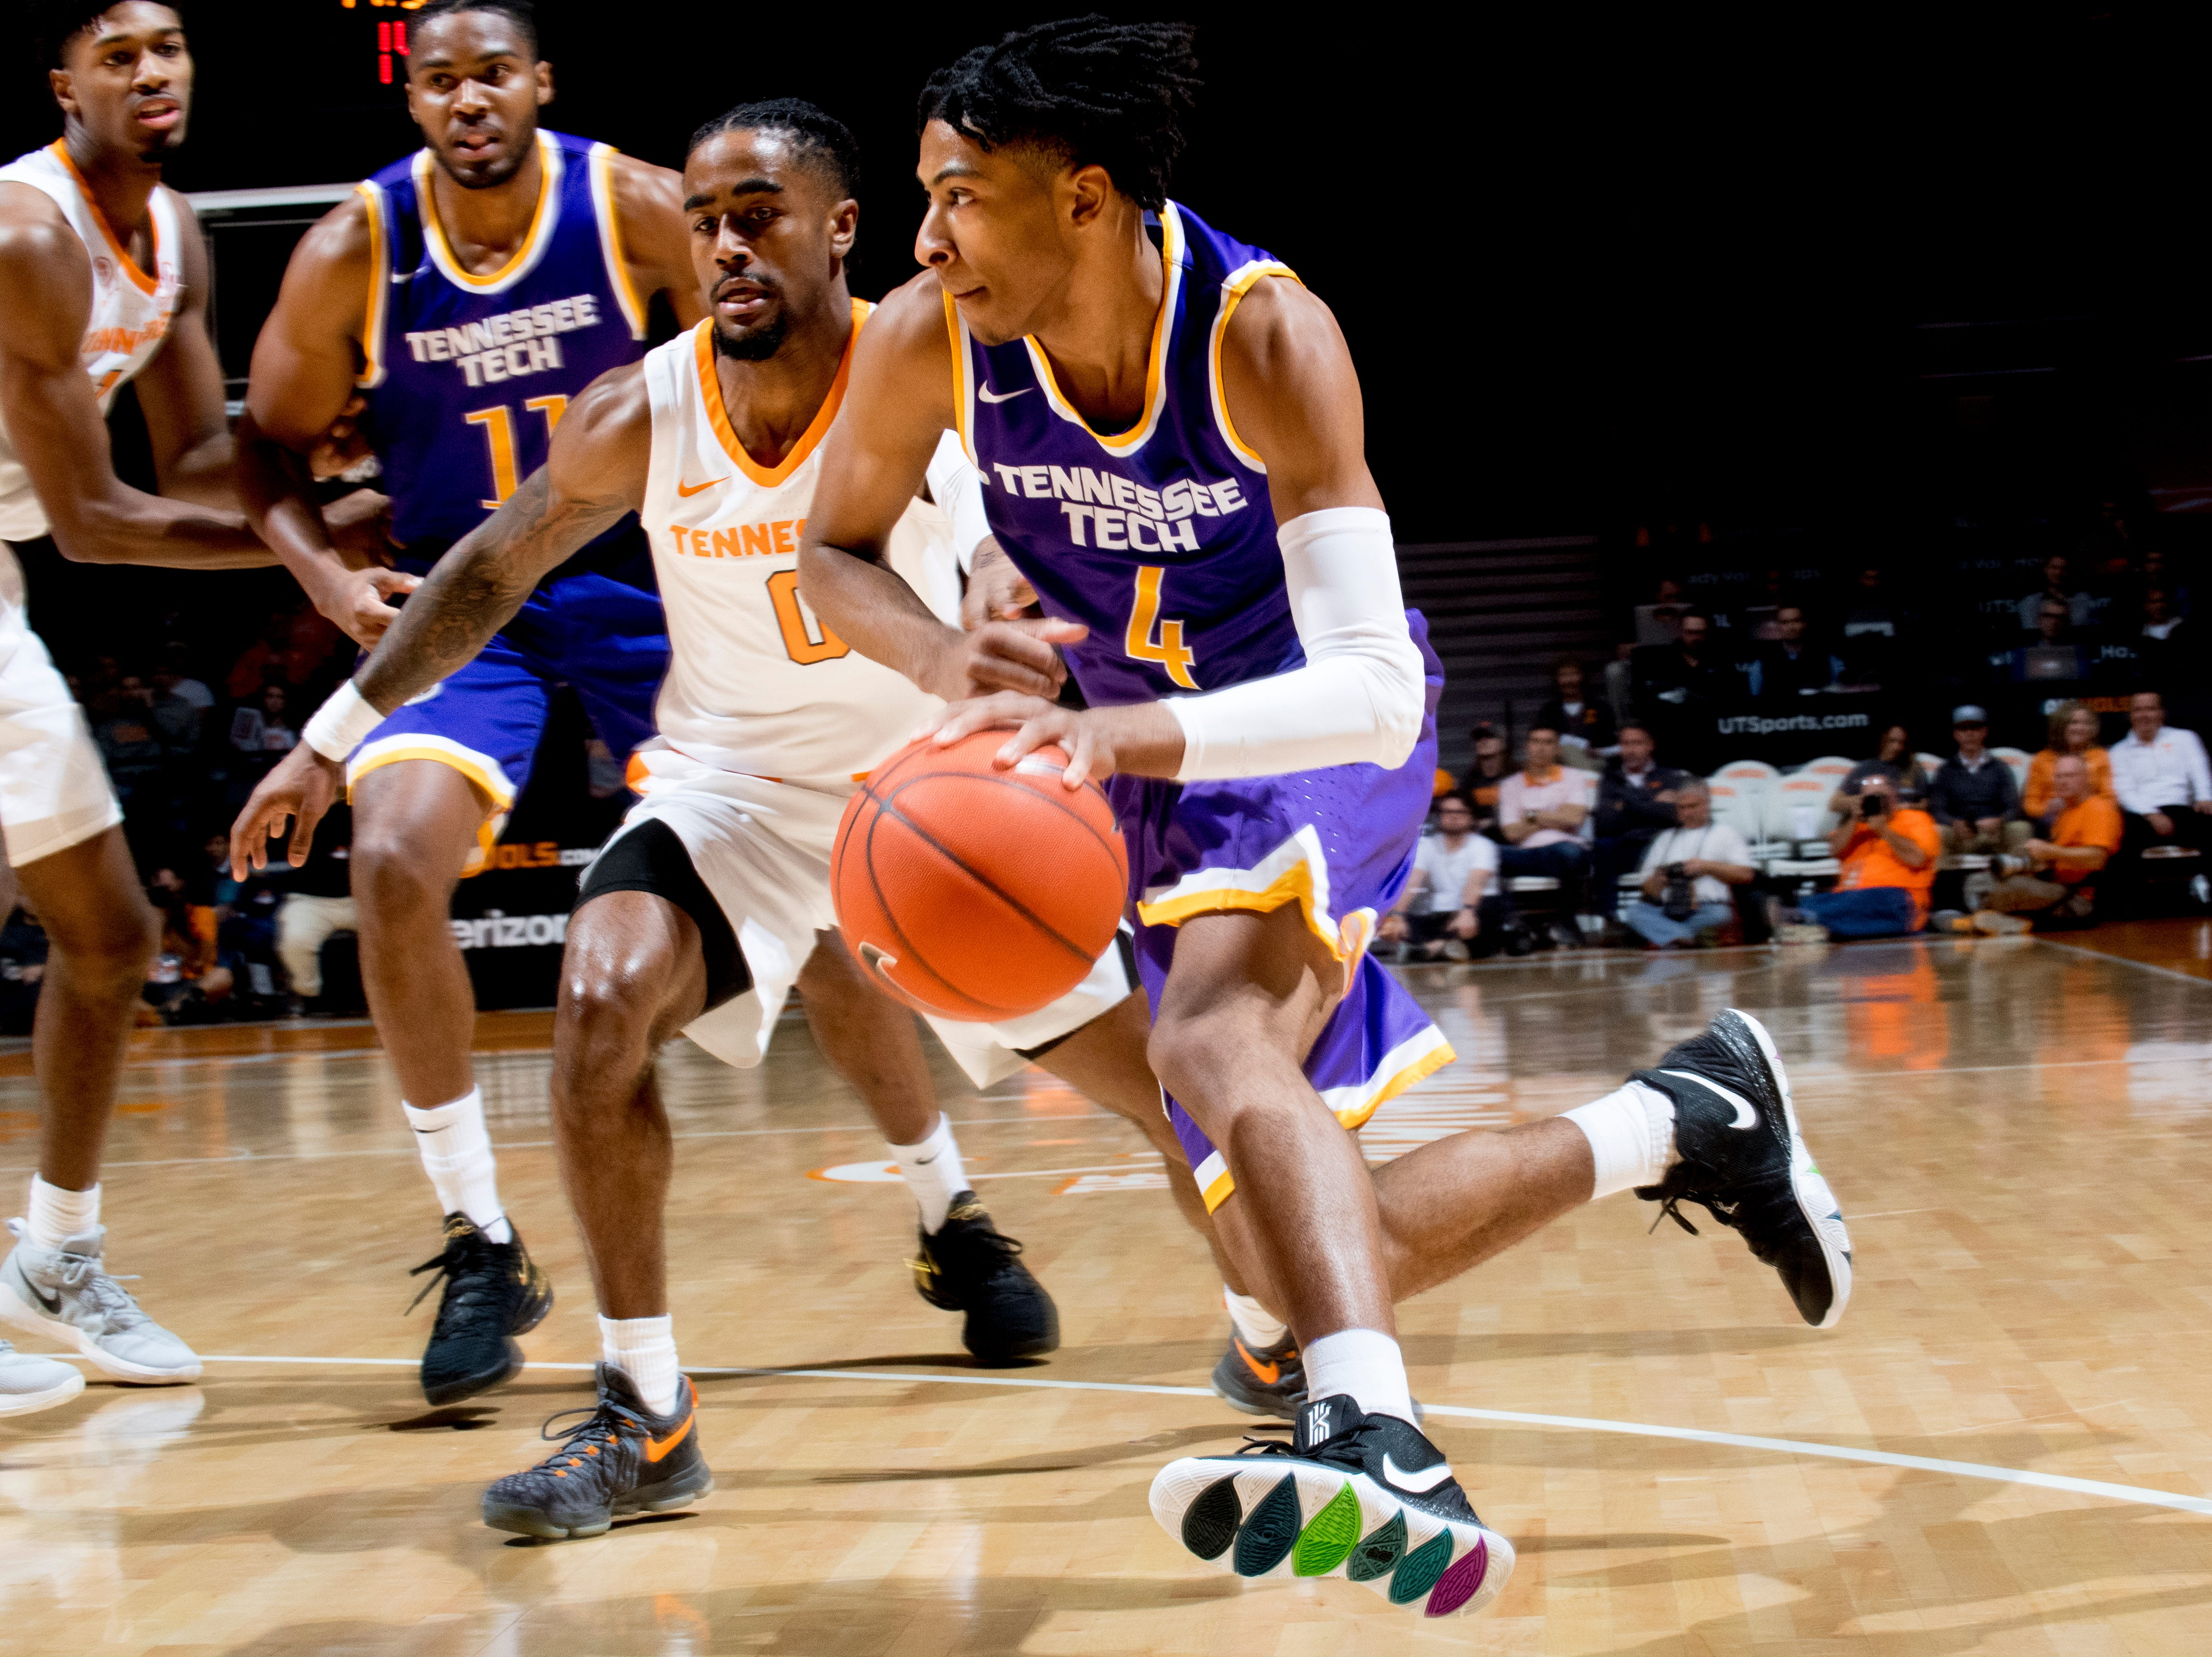 Tennessee Tech guard Jr. Clay (4) dribbles down the court during a game between Tennessee and Tennessee Tech at Thompson-Boling Arena in Knoxville, Tennessee on Saturday, December 29, 2018.